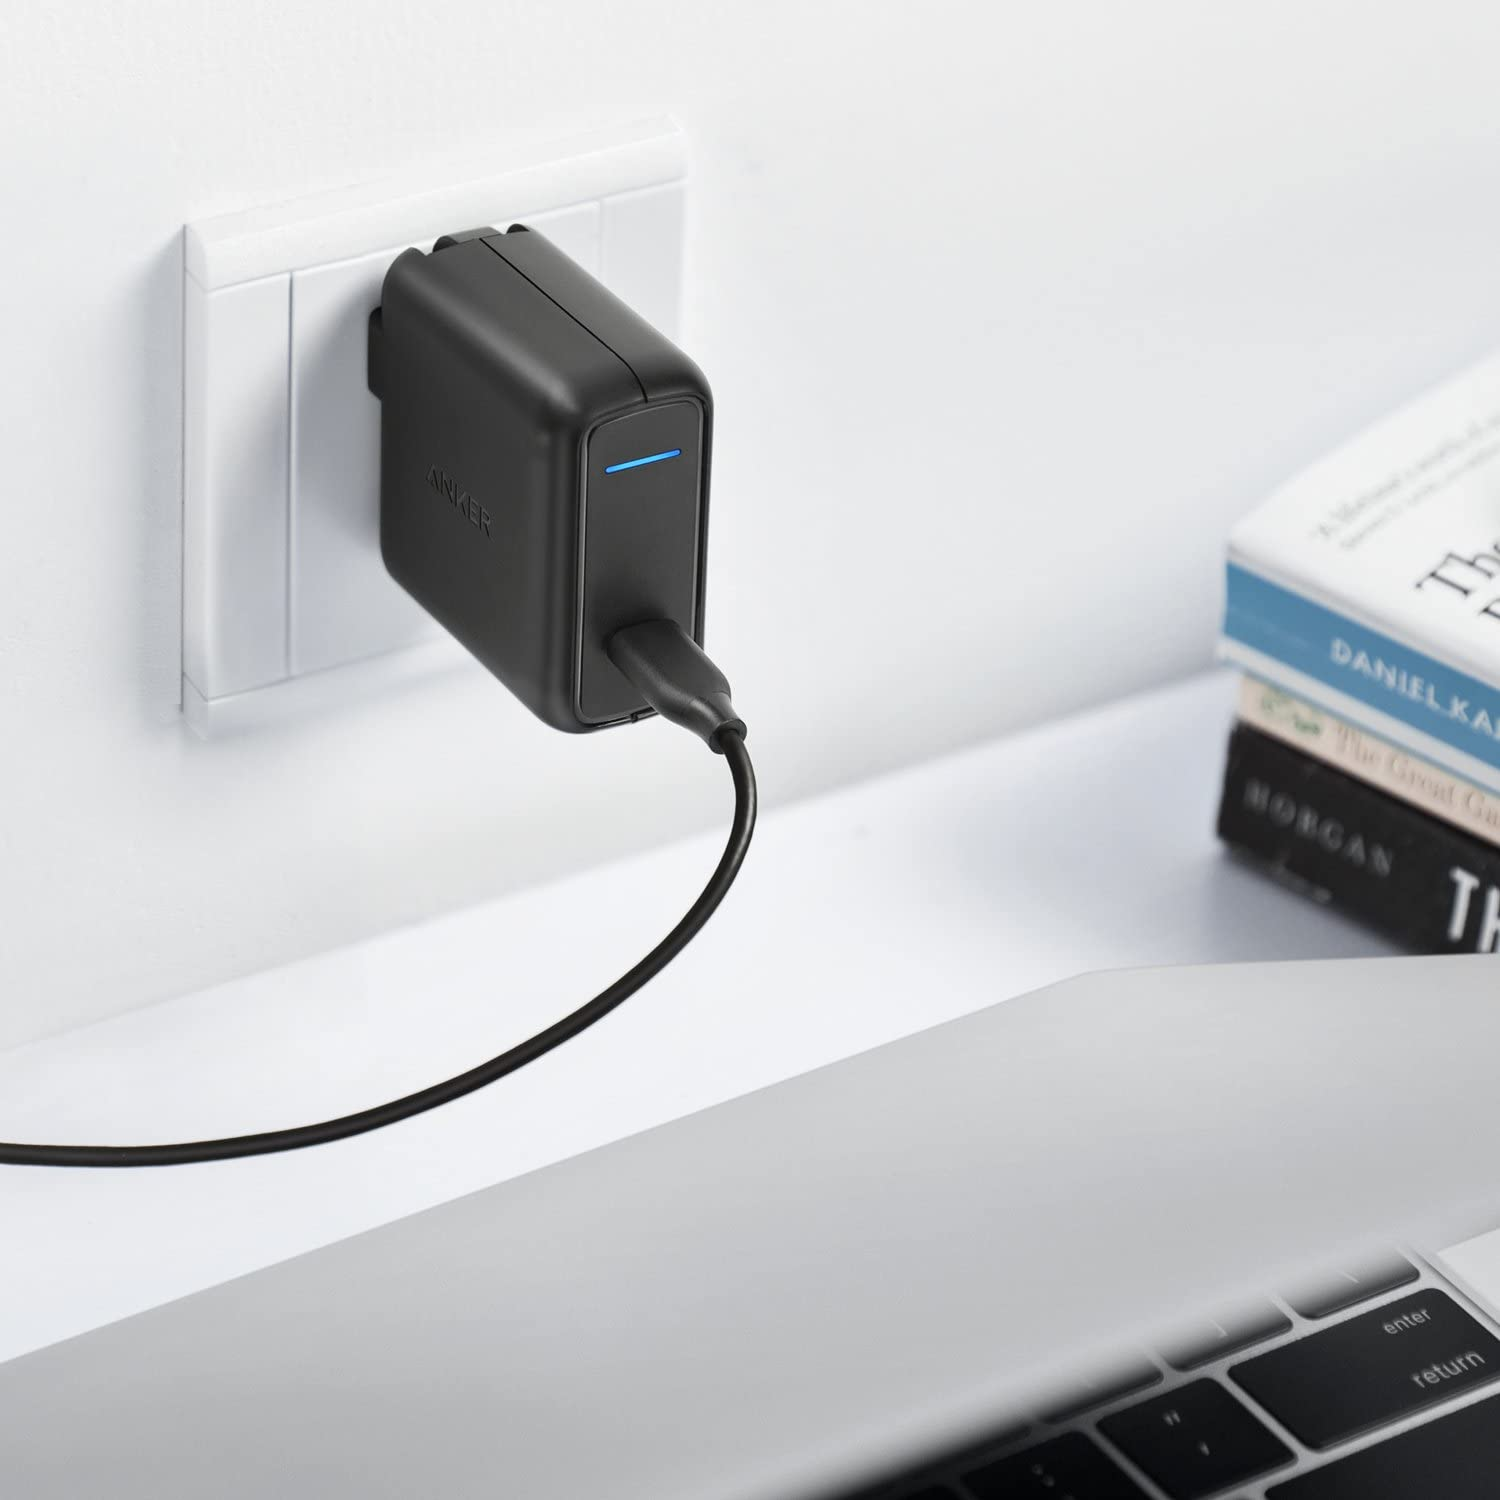 Is USB-C PD Charger Safe For Laptops, Smartphones, Wireless Headphones, And Other Devices?